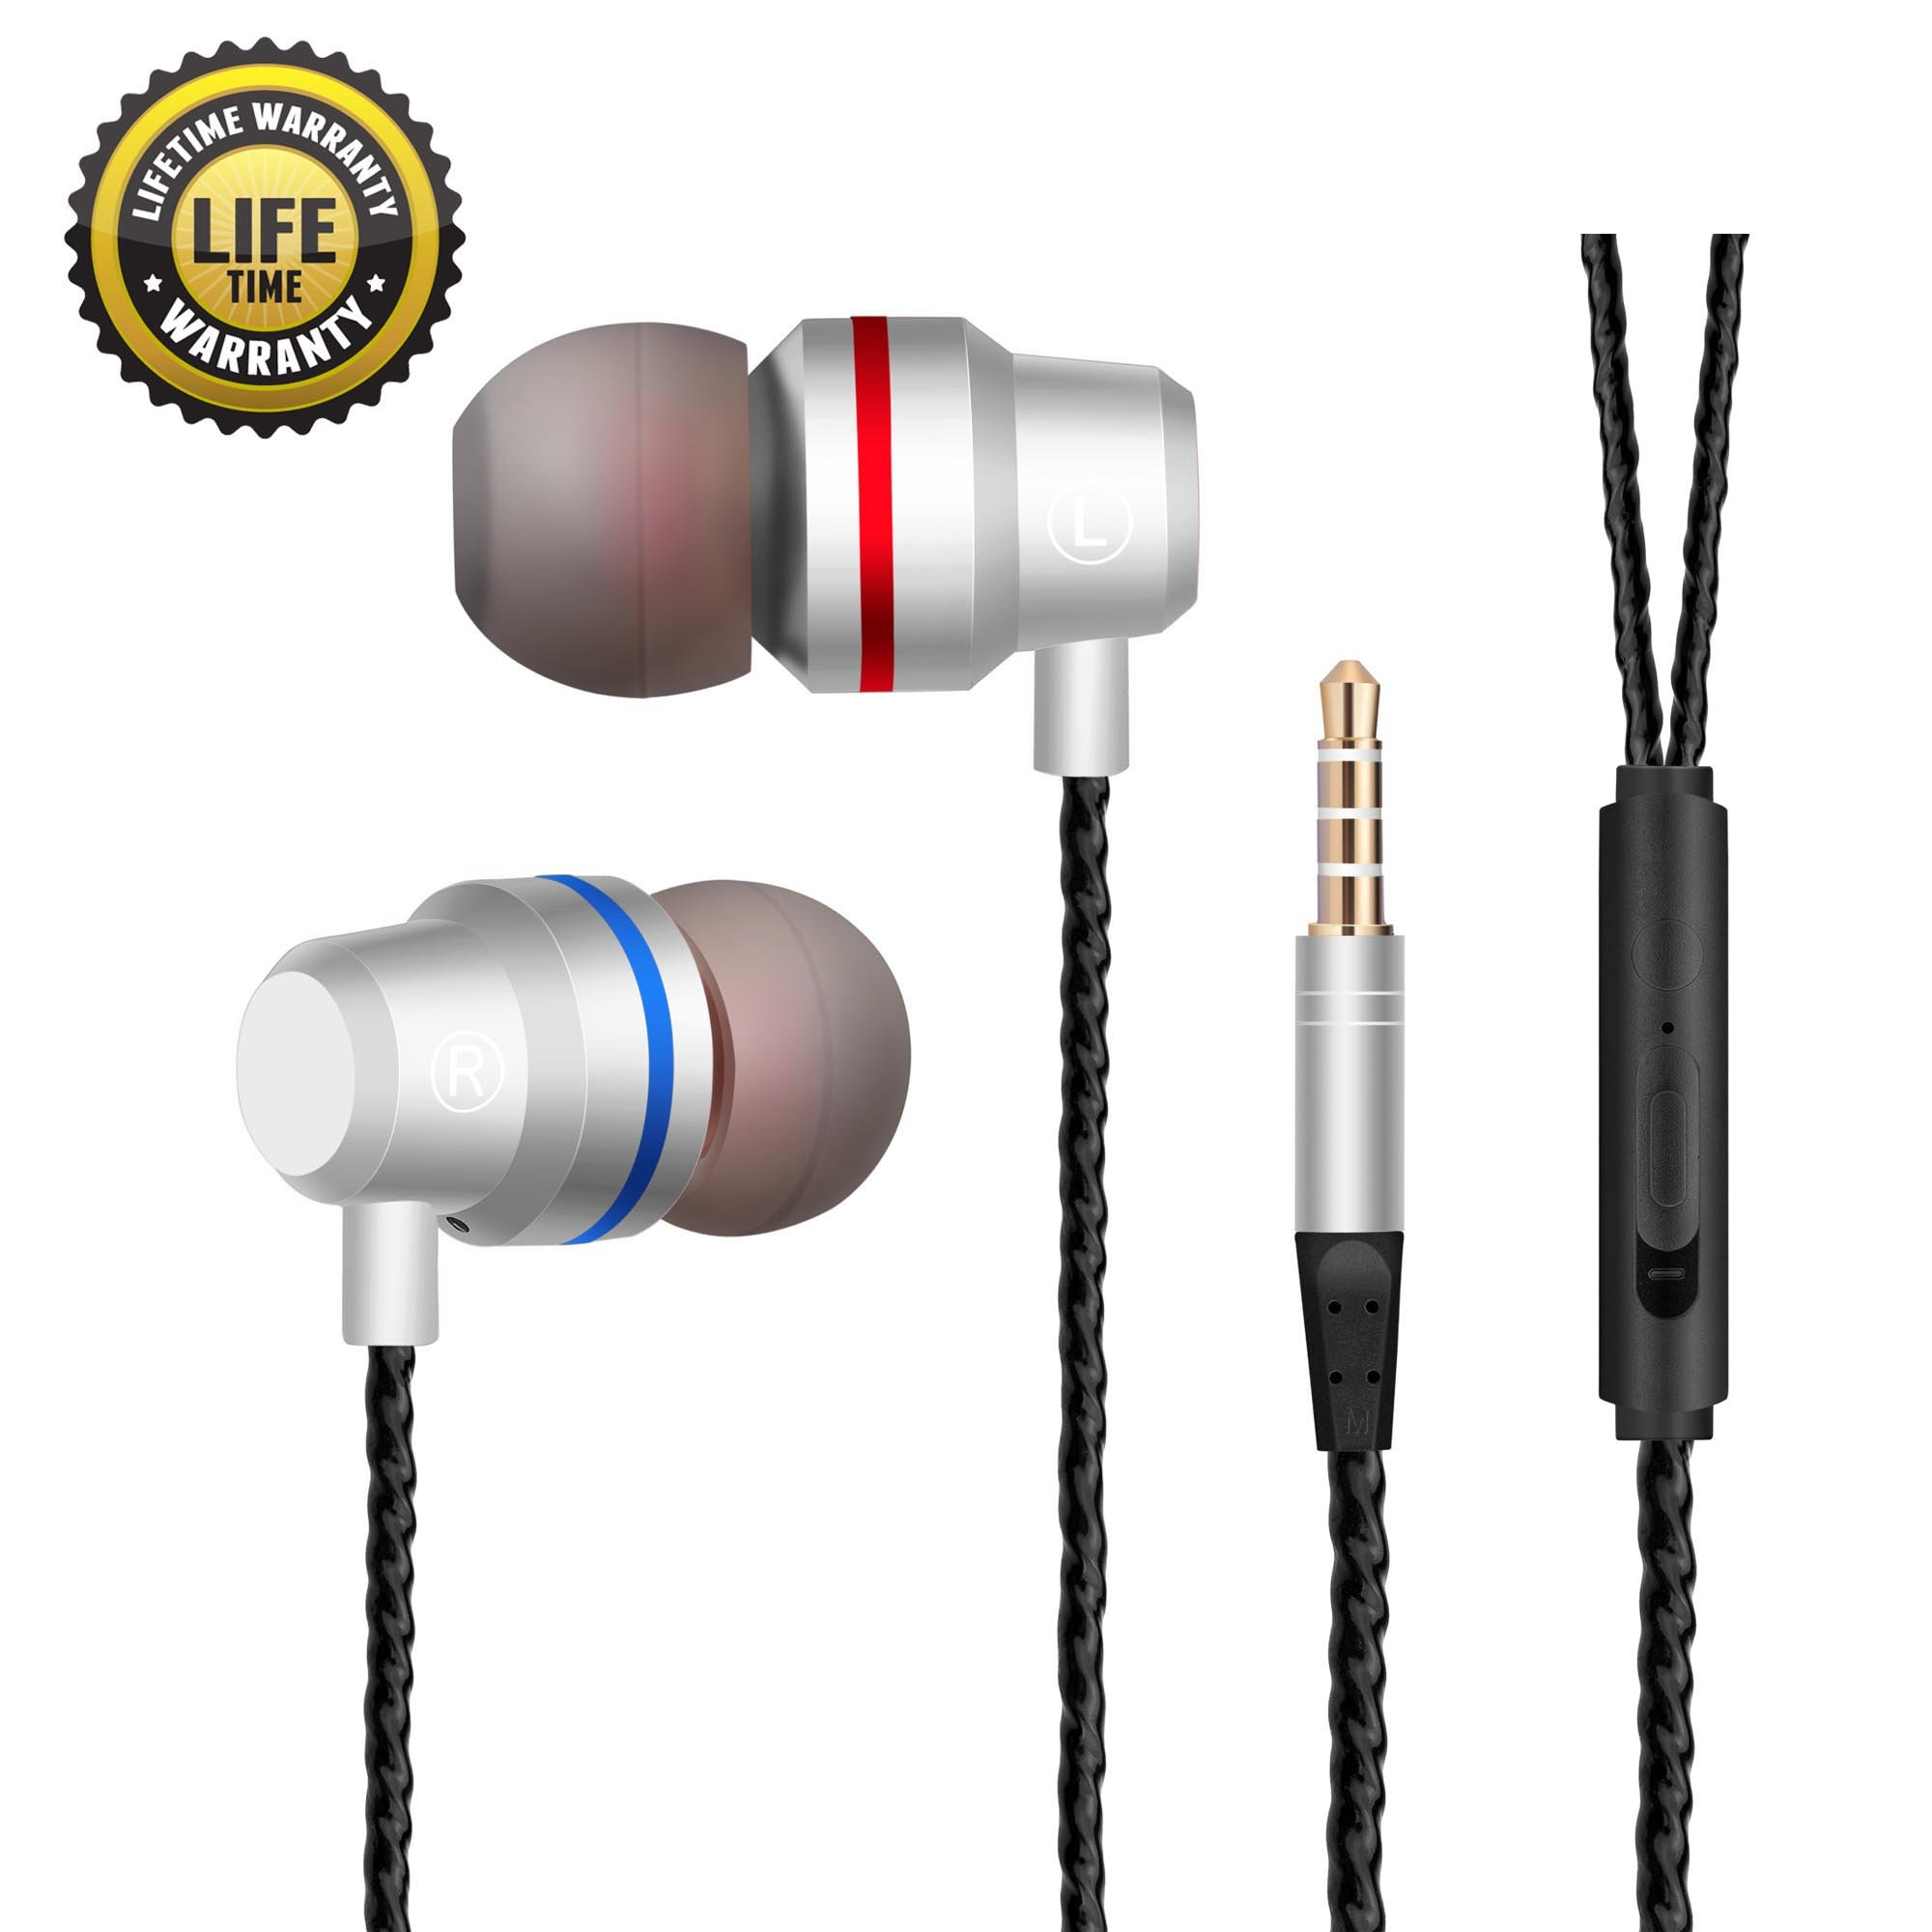 Earphones In Ear Headphones Earbuds with Microphone Mic Stereo and Volume Control Waterproof Wired Earphone For iPhone Samsung Android Mp3 Players Tablet Laptop 3.5mm Audio